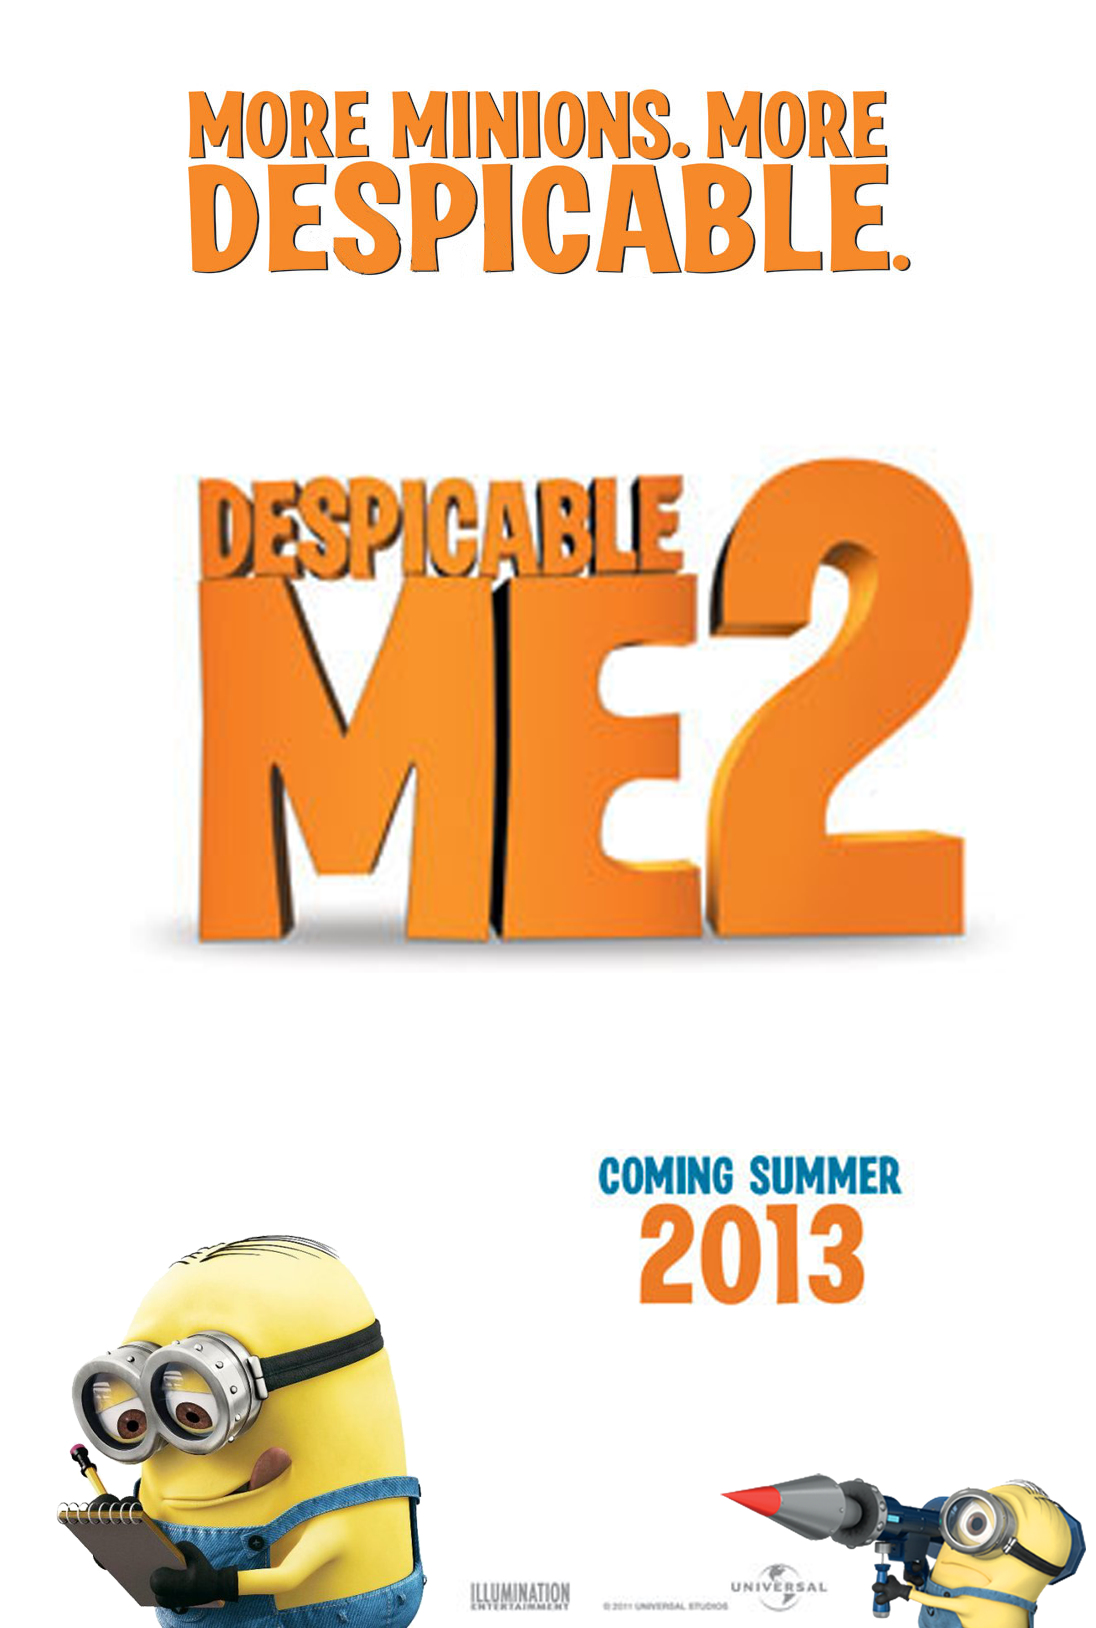 Despicable Me 2 - Movie Poster #4 (Original)